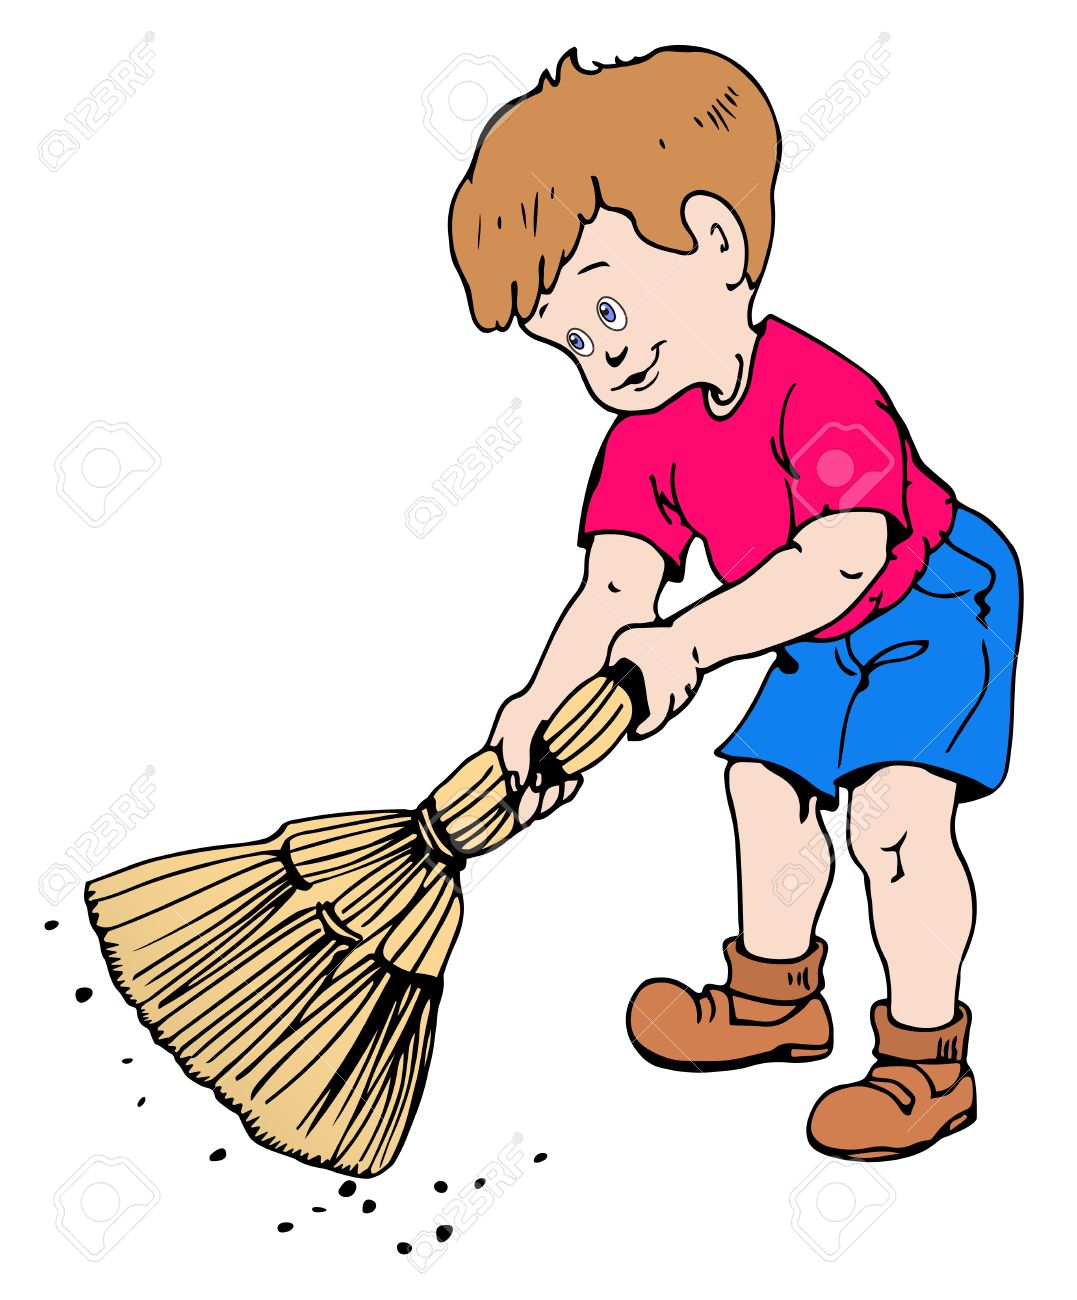 Illustration of a boy sweeping the dirt on a white background.